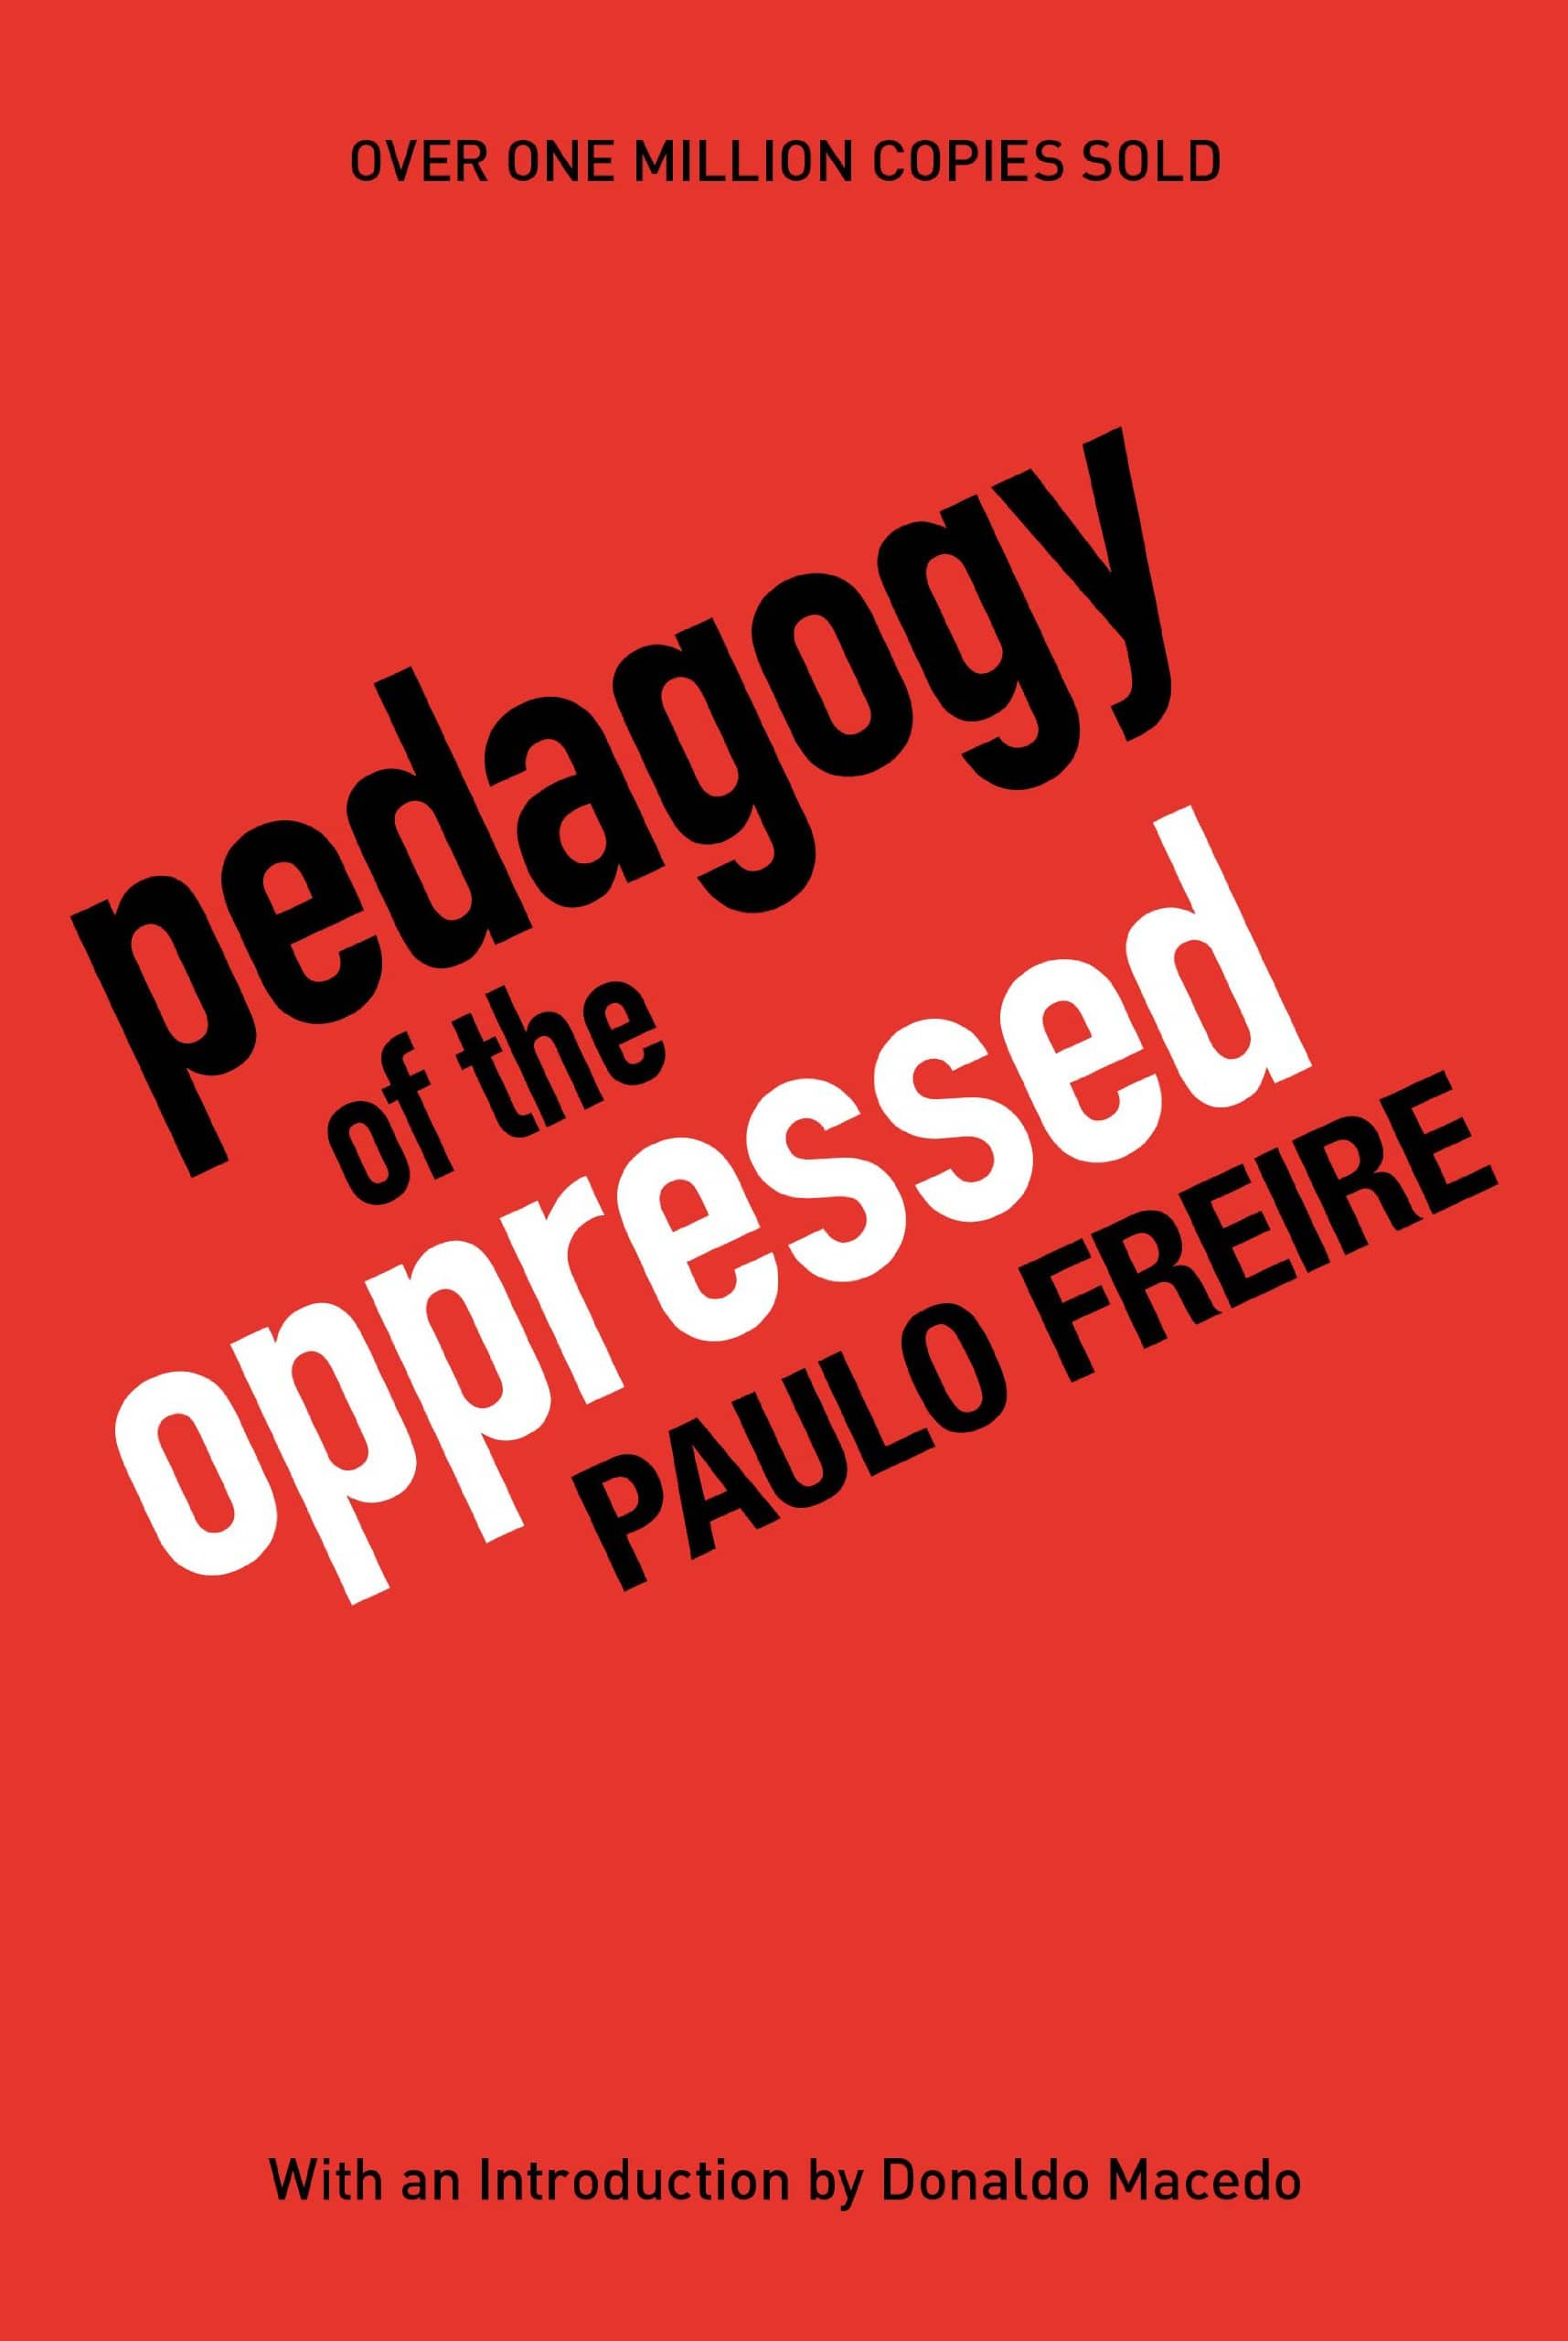 Paulo Freire - Popular Participation